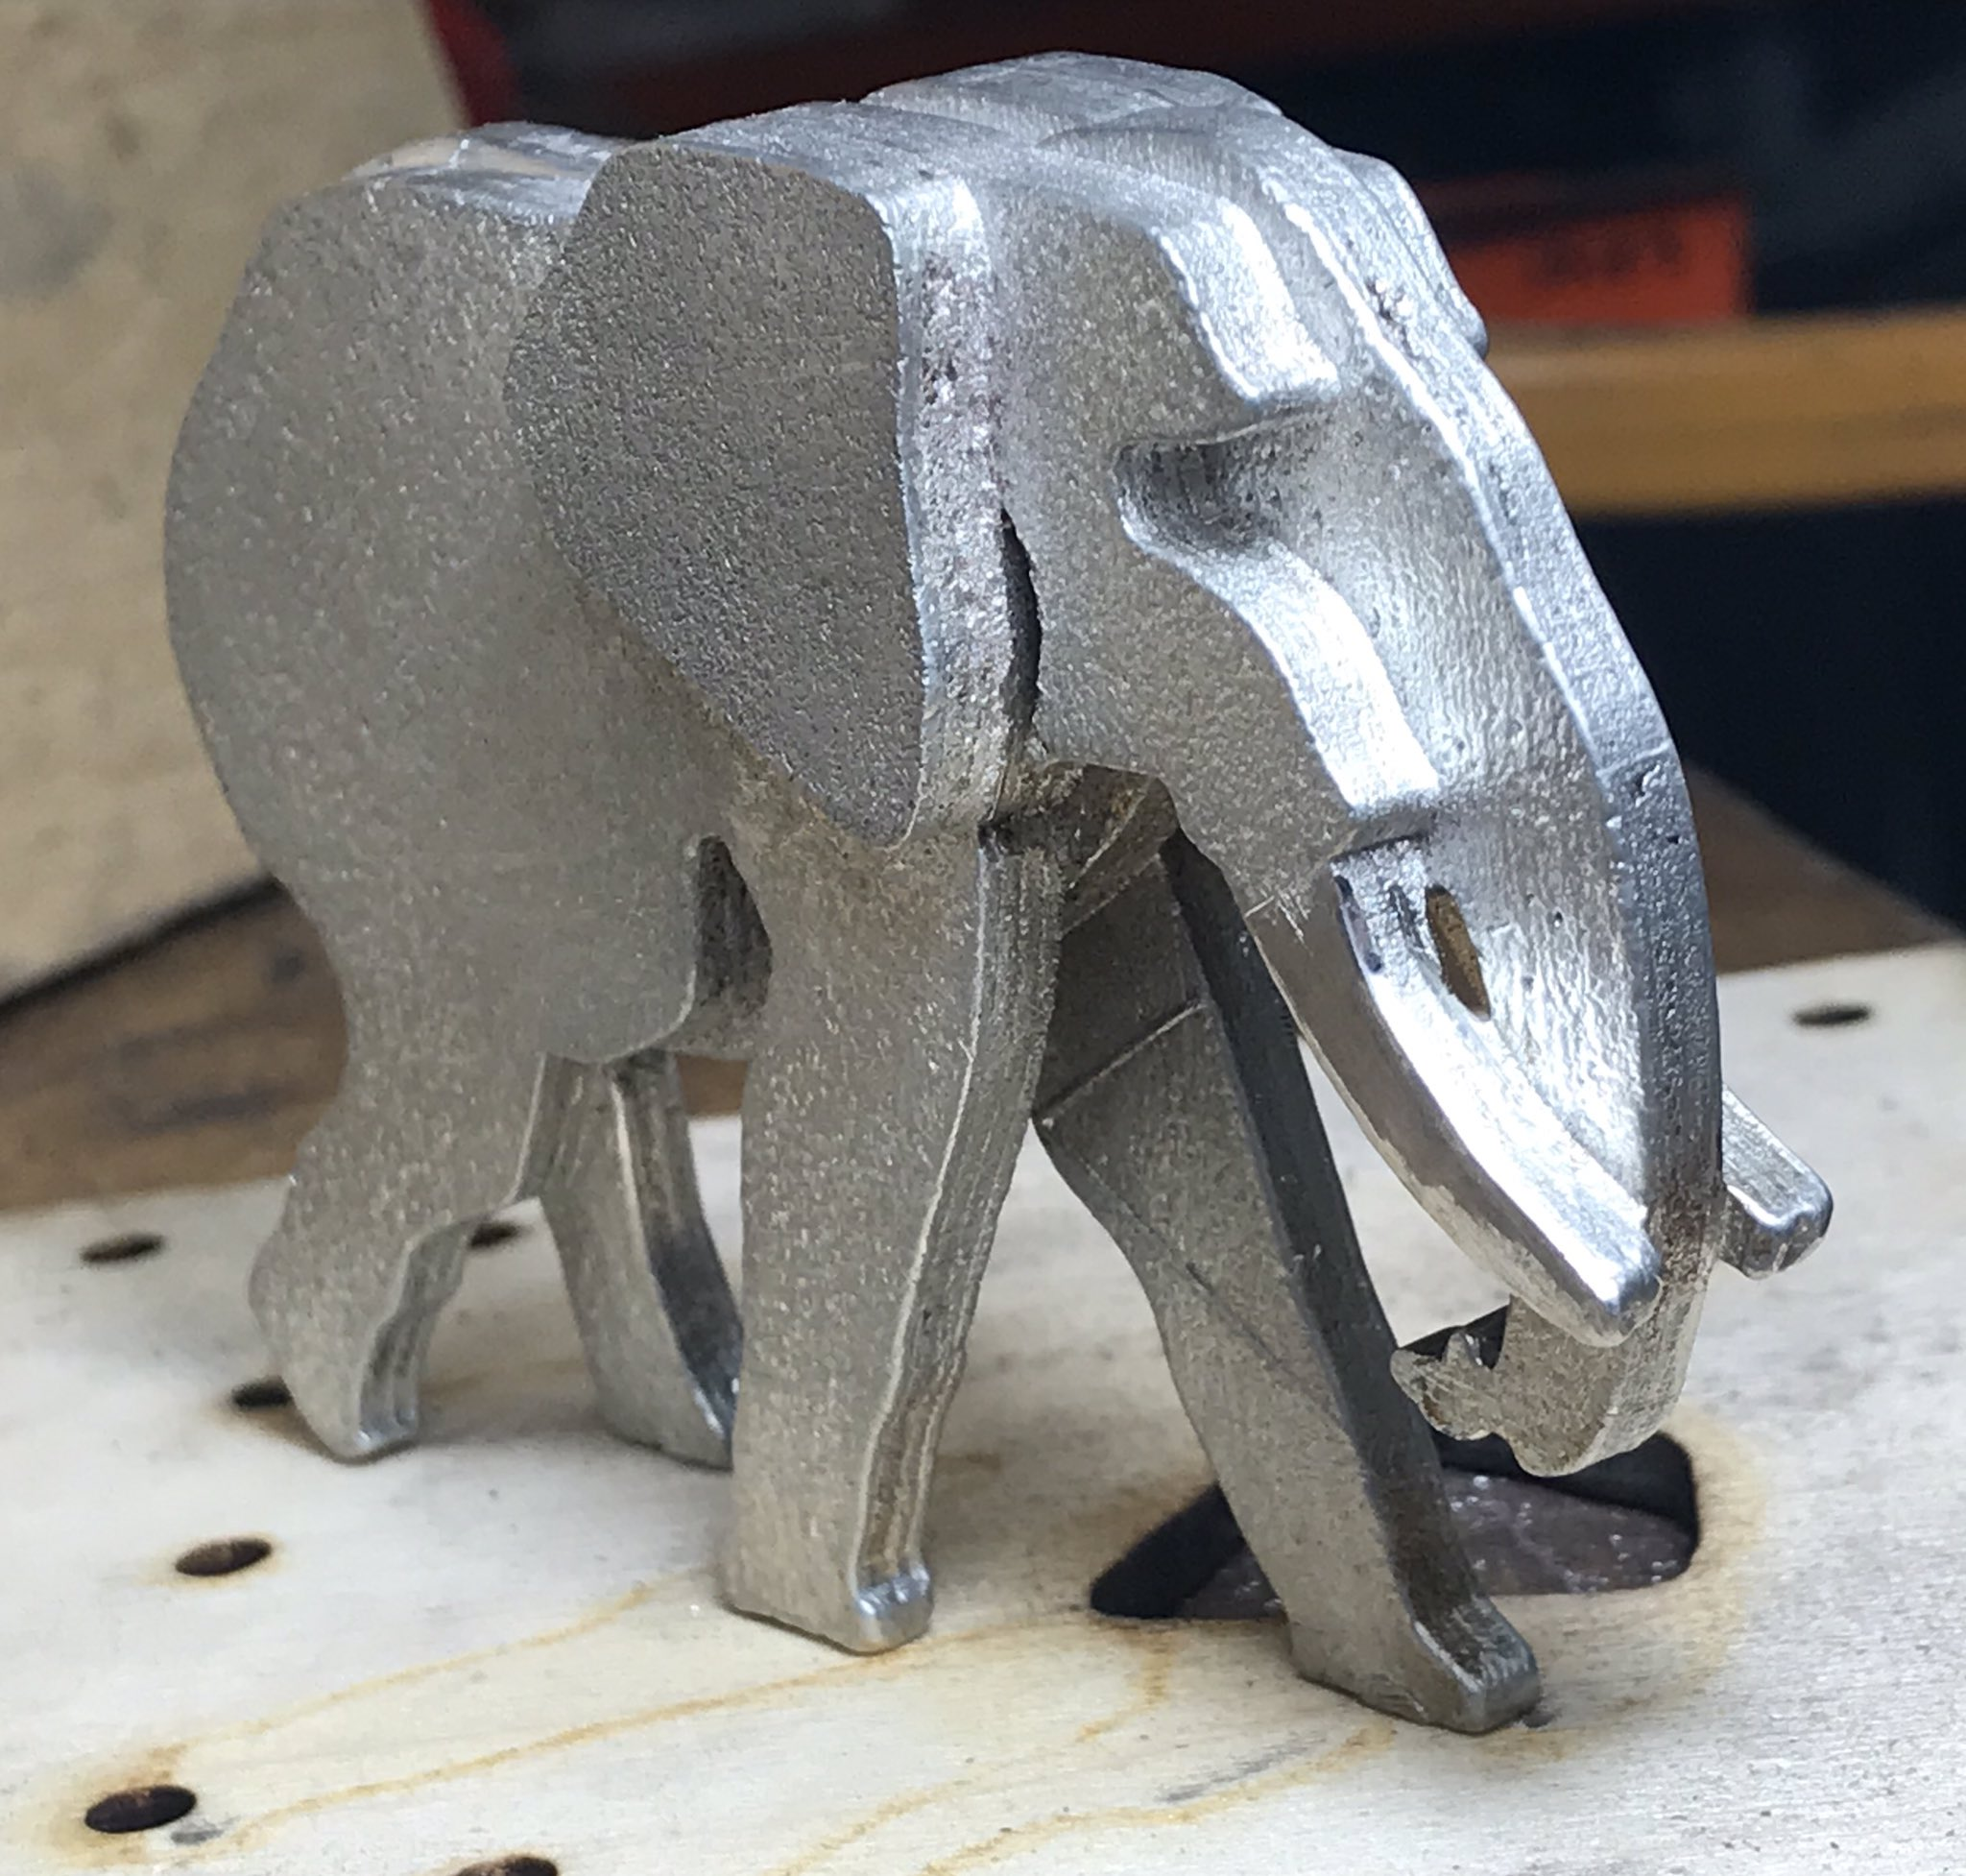 Low Tech Pewter Casting In The Kitchen